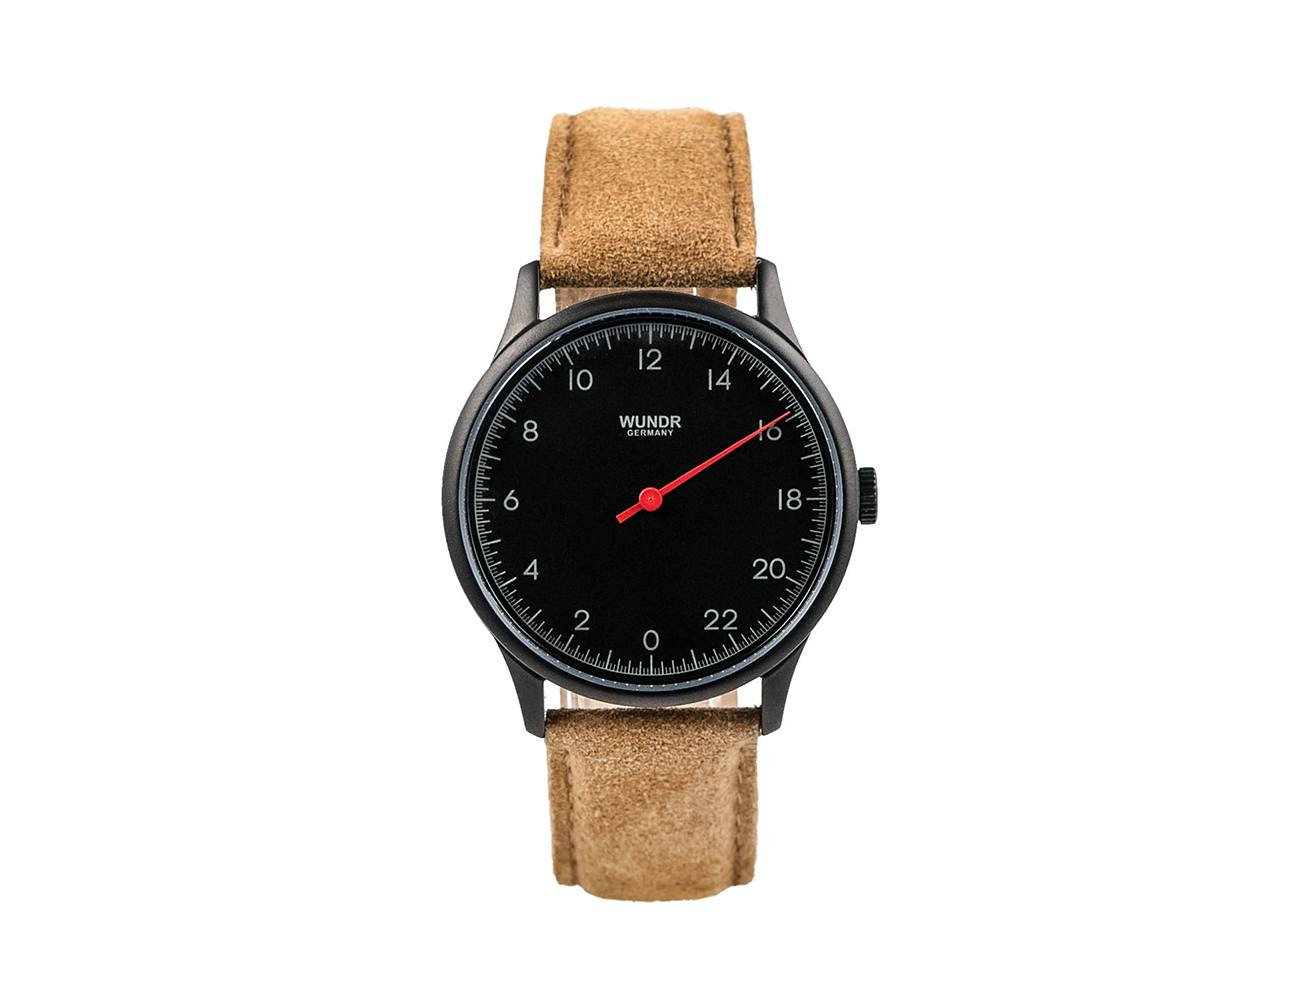 Wundrwatch – The Watch That Might Change Your Life